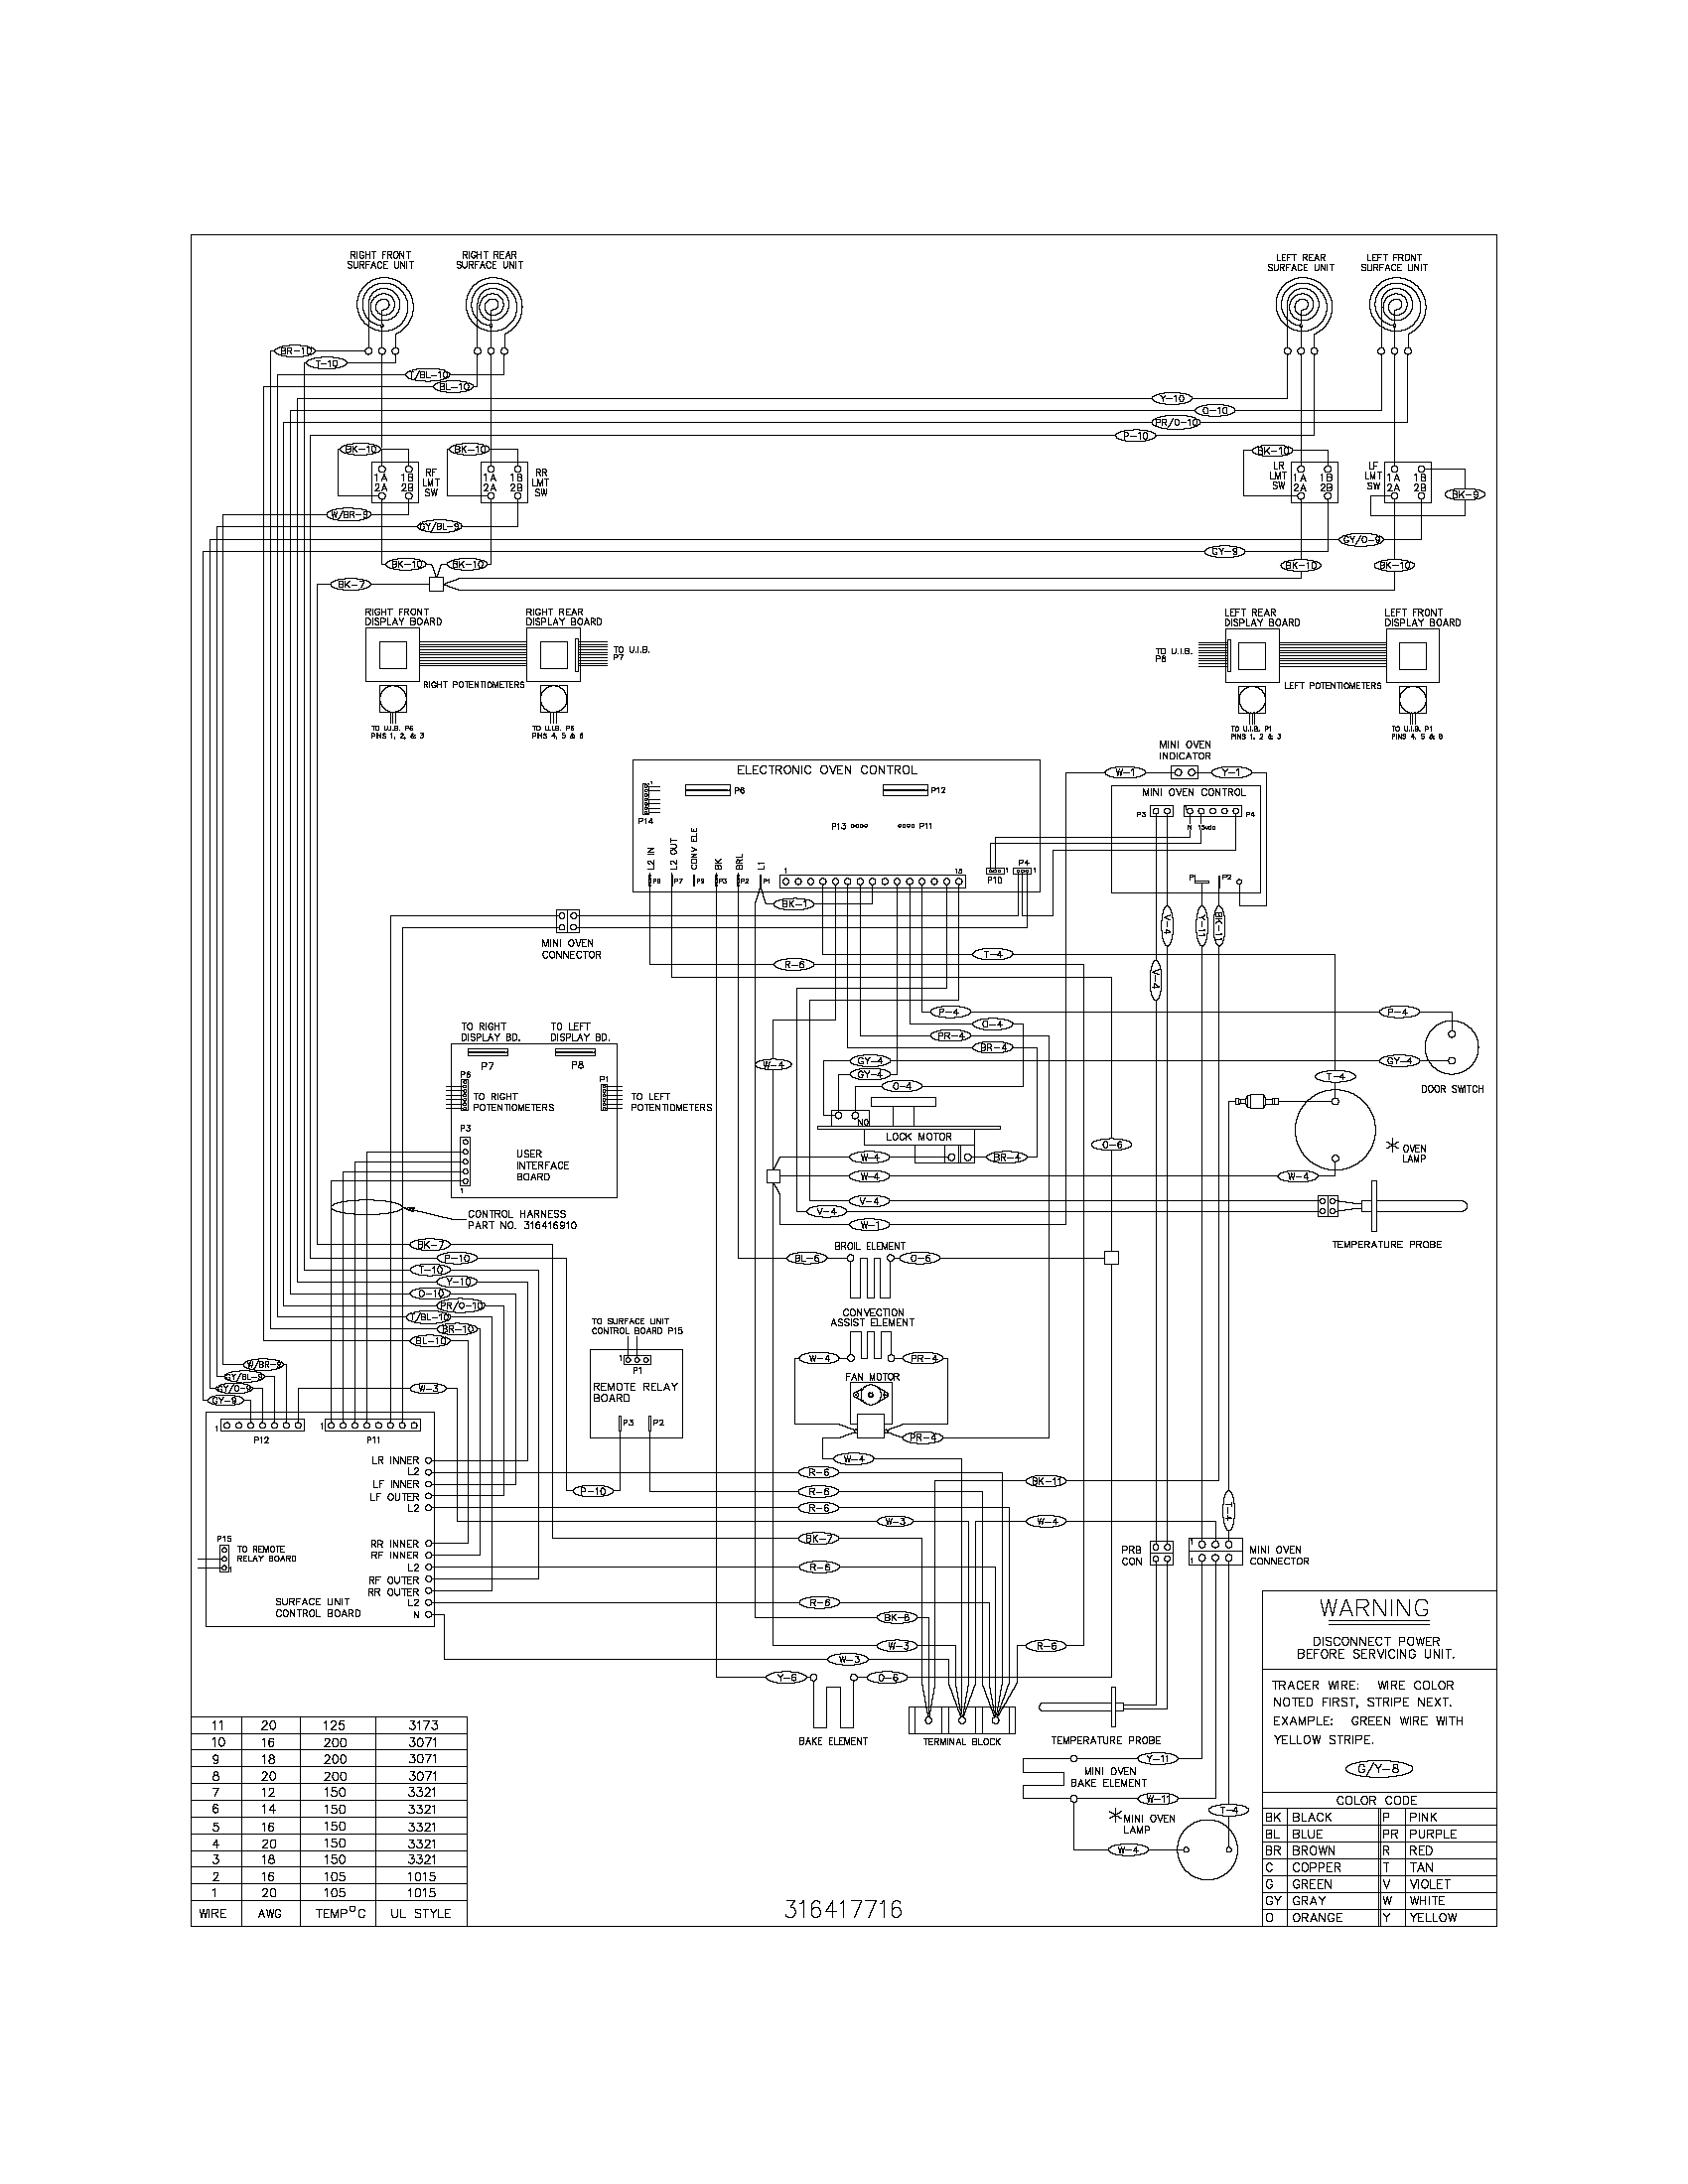 wiring diagram parts odes wiring diagram e z go wiring diagram \u2022 wiring diagrams j frigidaire gallery dryer wiring diagram at mr168.co